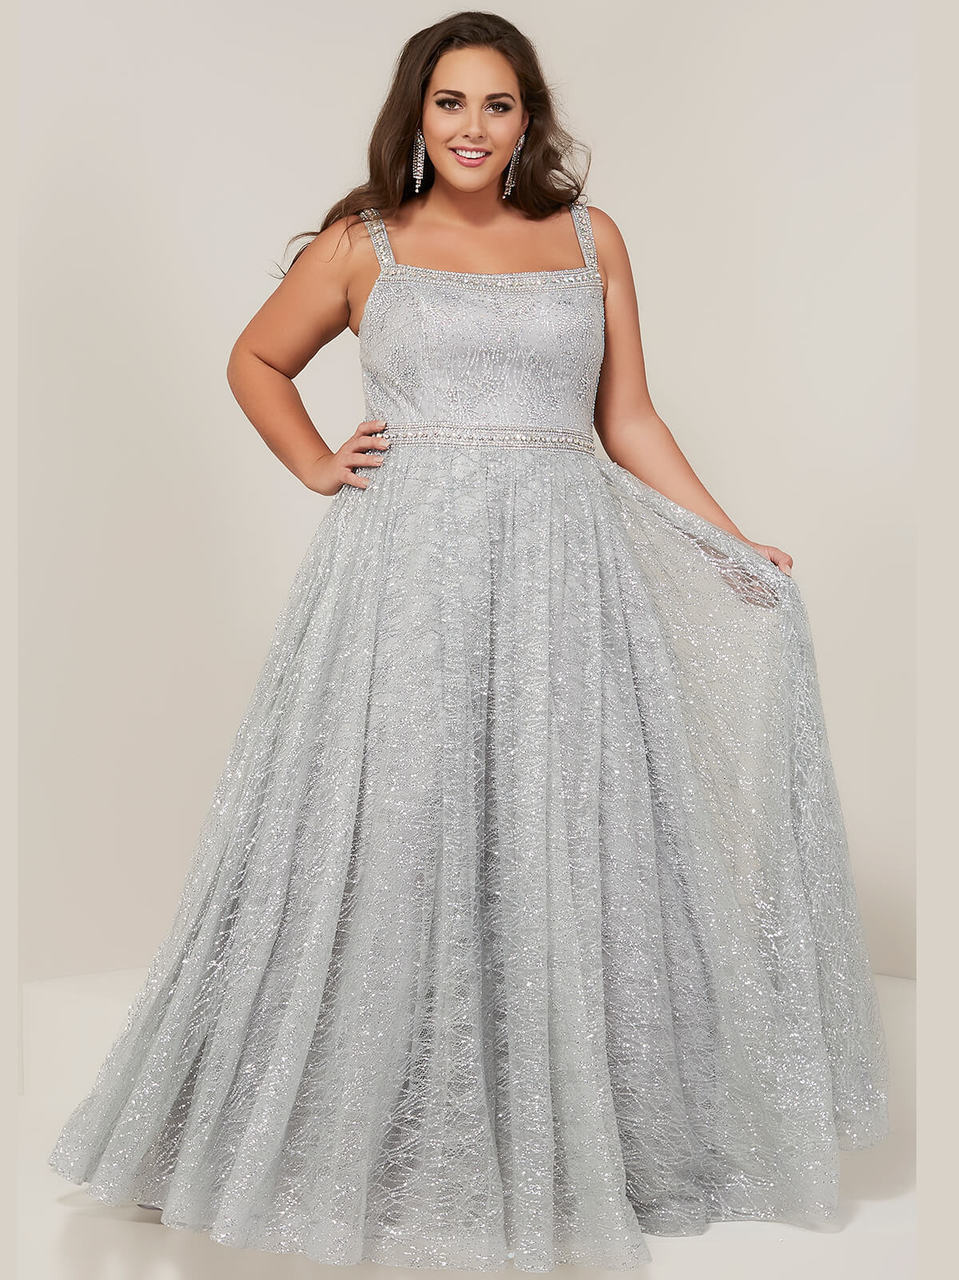 Square Neckline A-line Tiffany Designs 16381 Plus Size Prom Dress ...